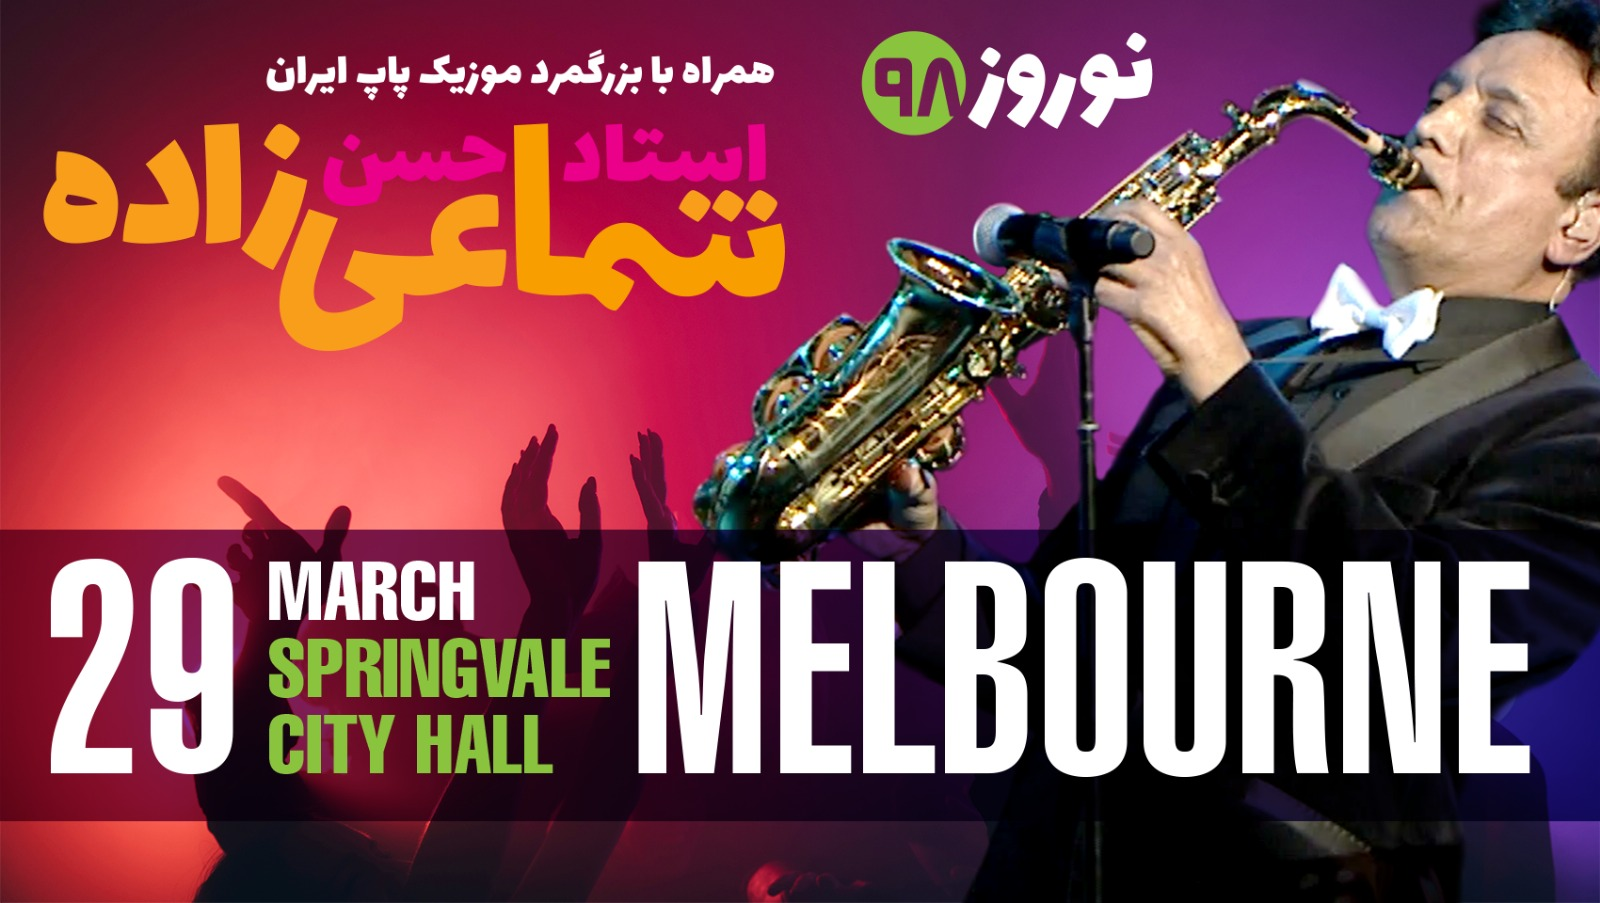 Tickets for  SHAMIZADEH  in MELBOURNE - NOROOZ  concert  in Springvale from Ticketbooth